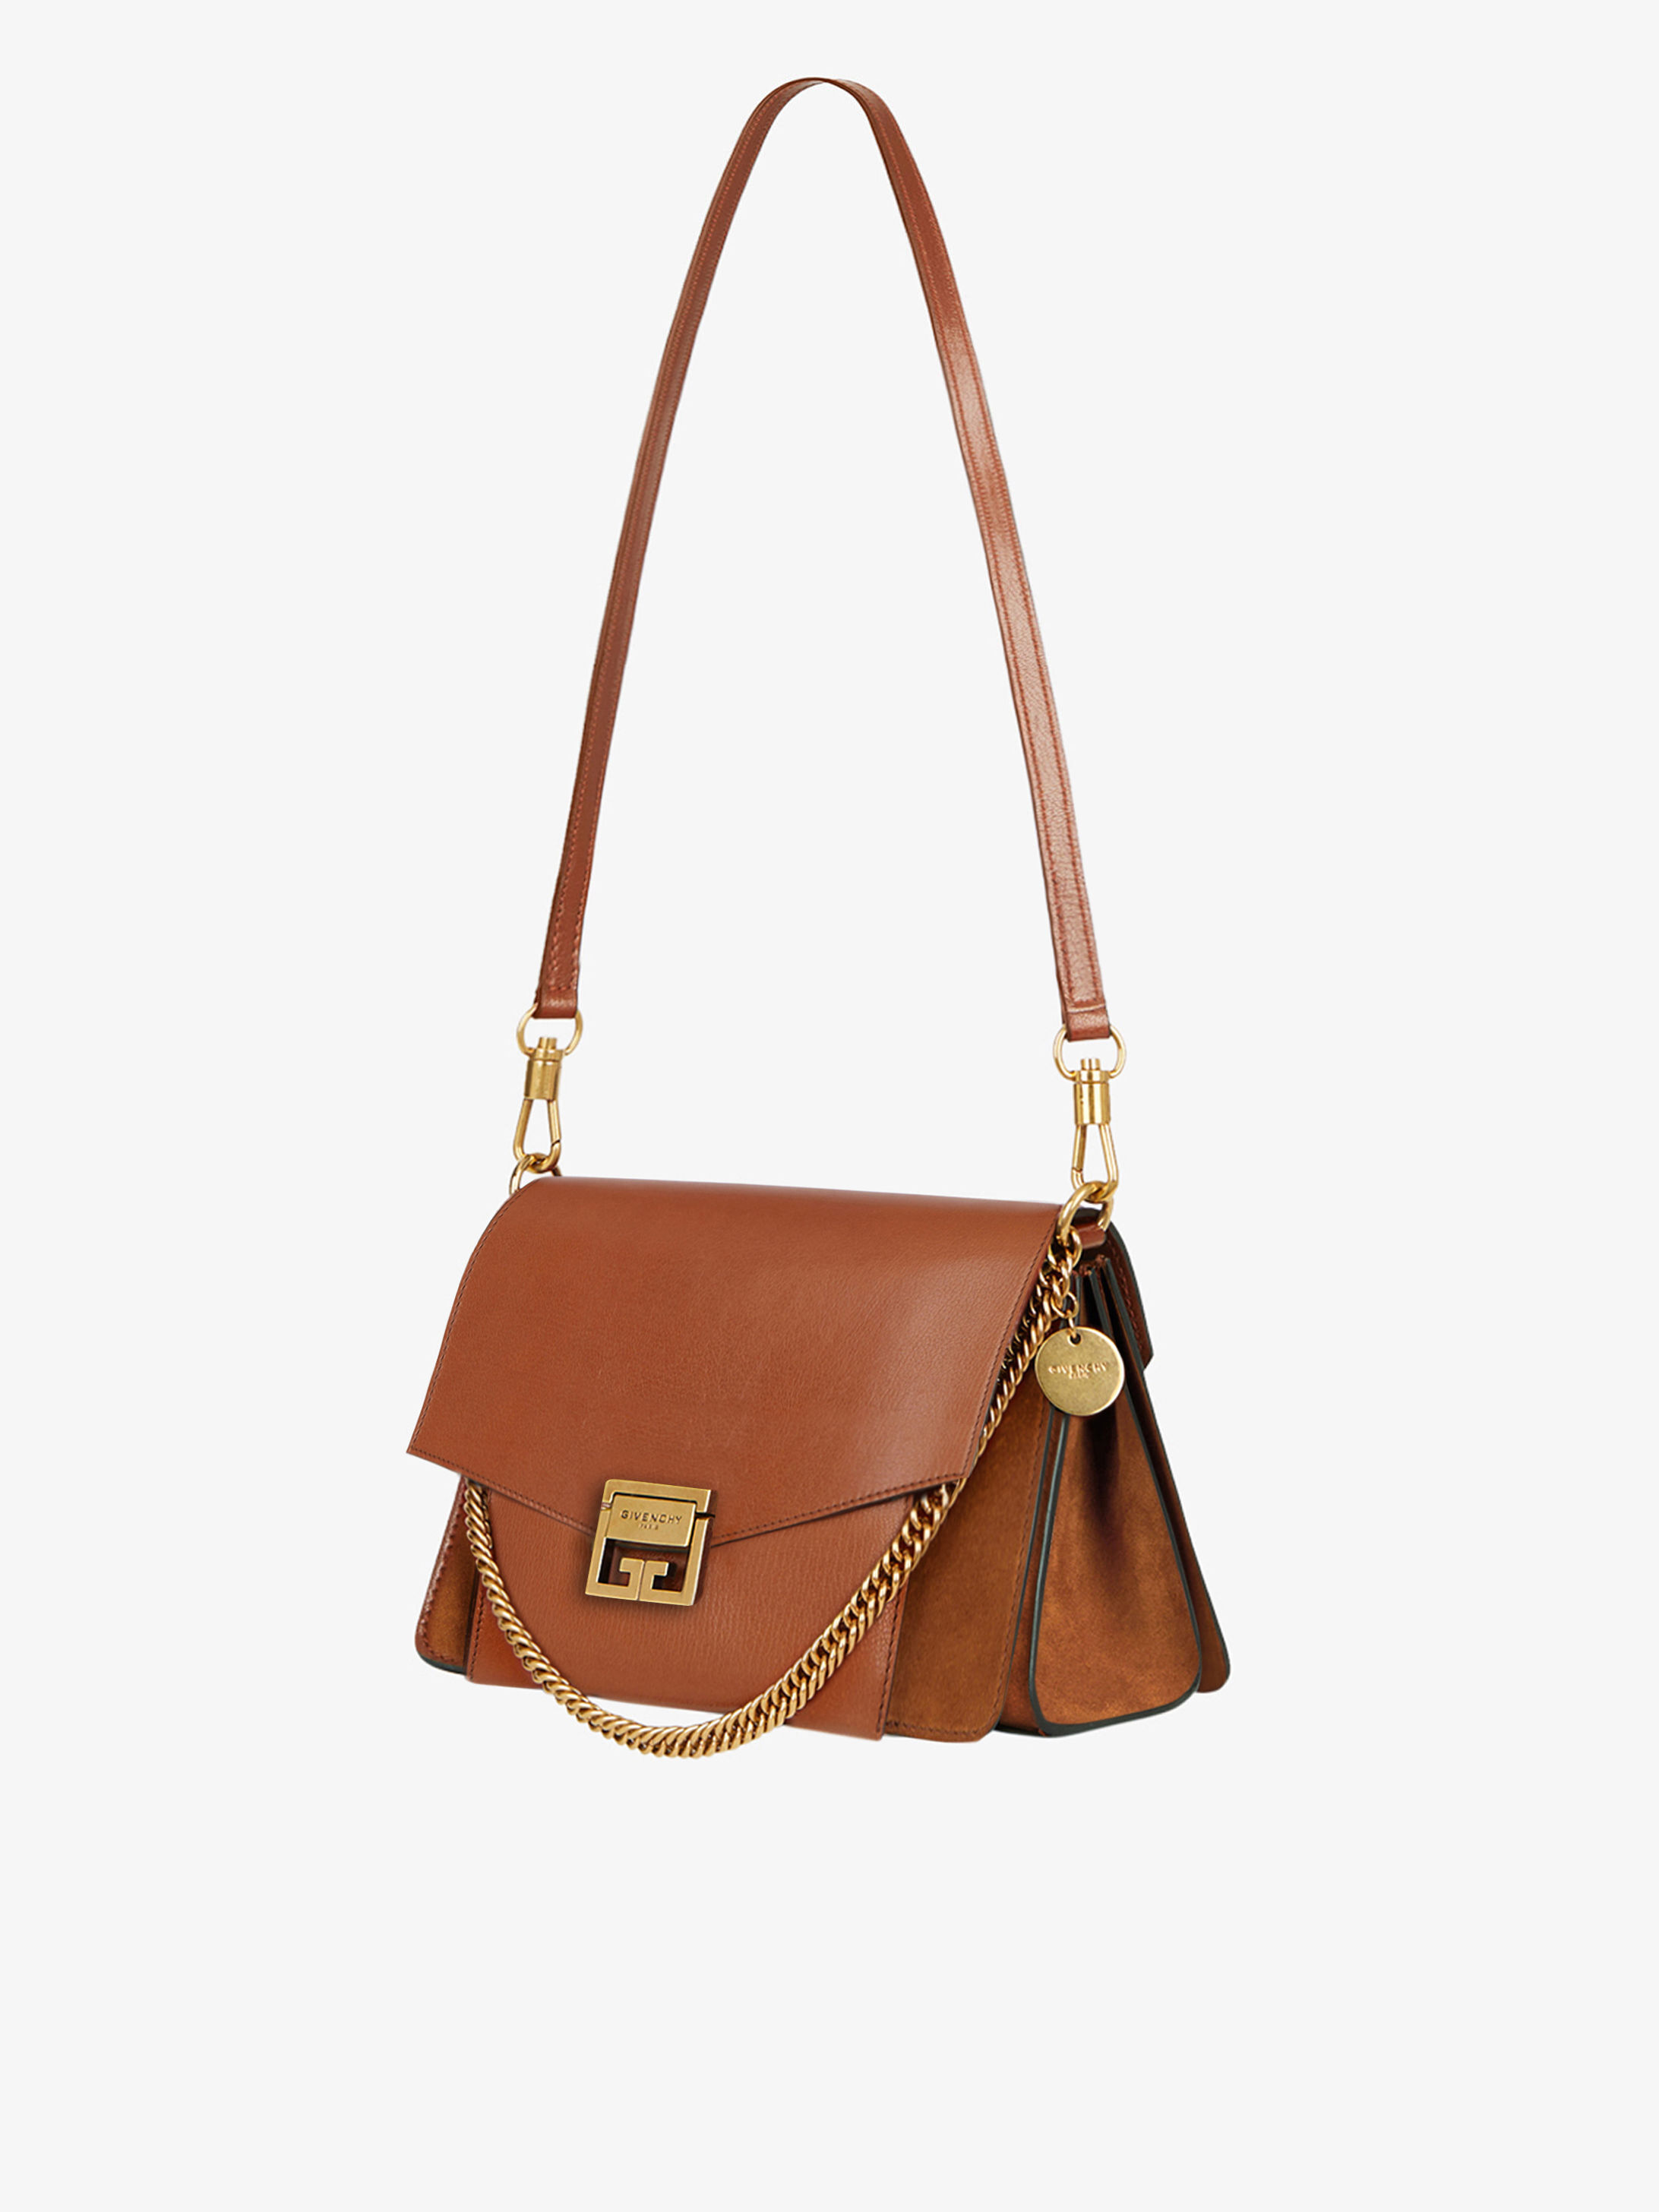 2043ba1817 Women's Cross-body Bags collection by Givenchy. | GIVENCHY Paris